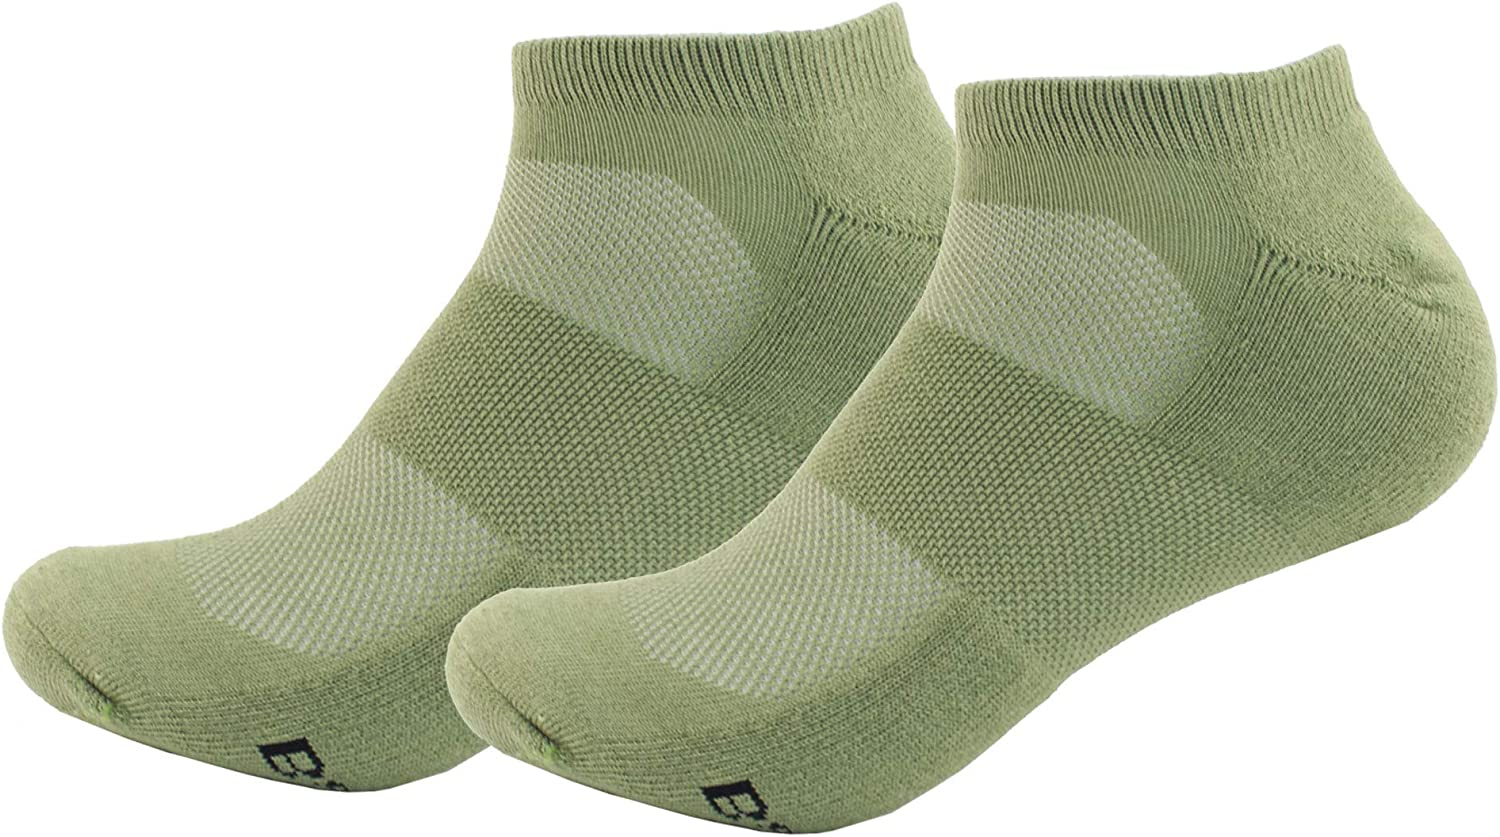 Women's Rayon from Bamboo Fiber Ultra Breathable Superior Wicking Athletic Ankle Sports Socks - 2 Pair Value Packs